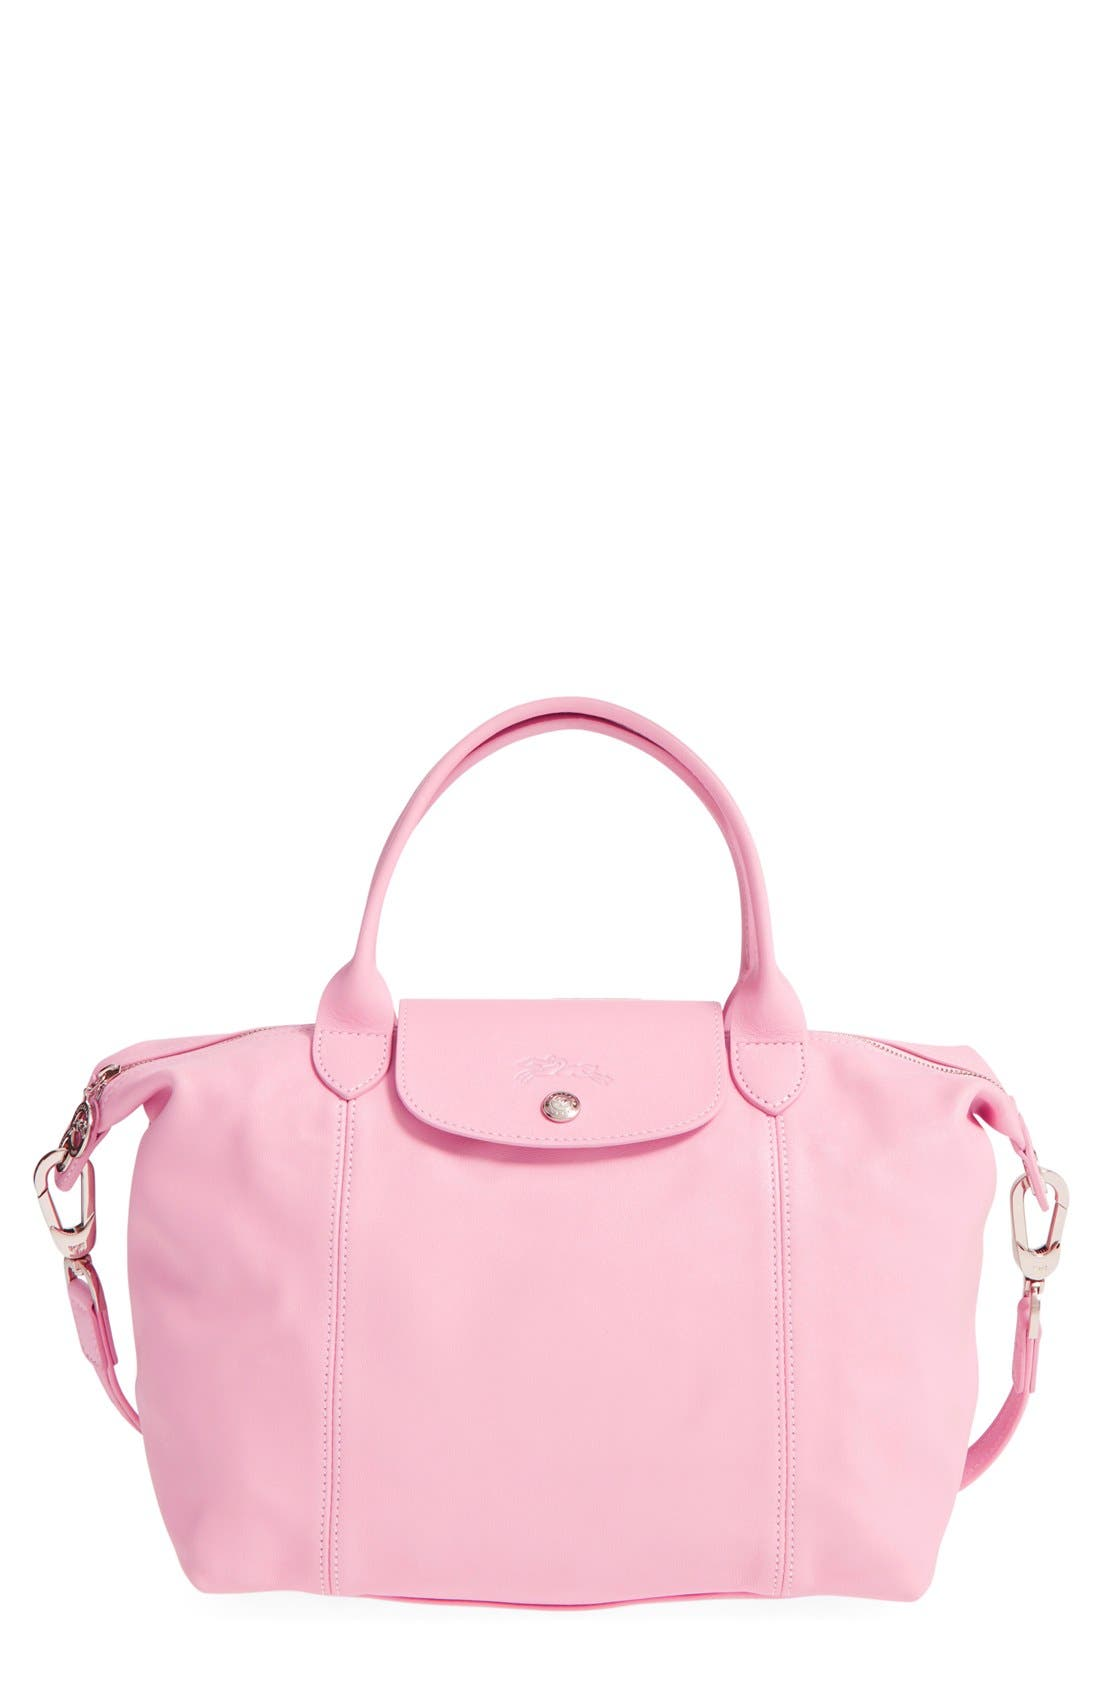 Small 'Le Pliage Cuir' Leather Top Handle Tote,                             Main thumbnail 23, color,